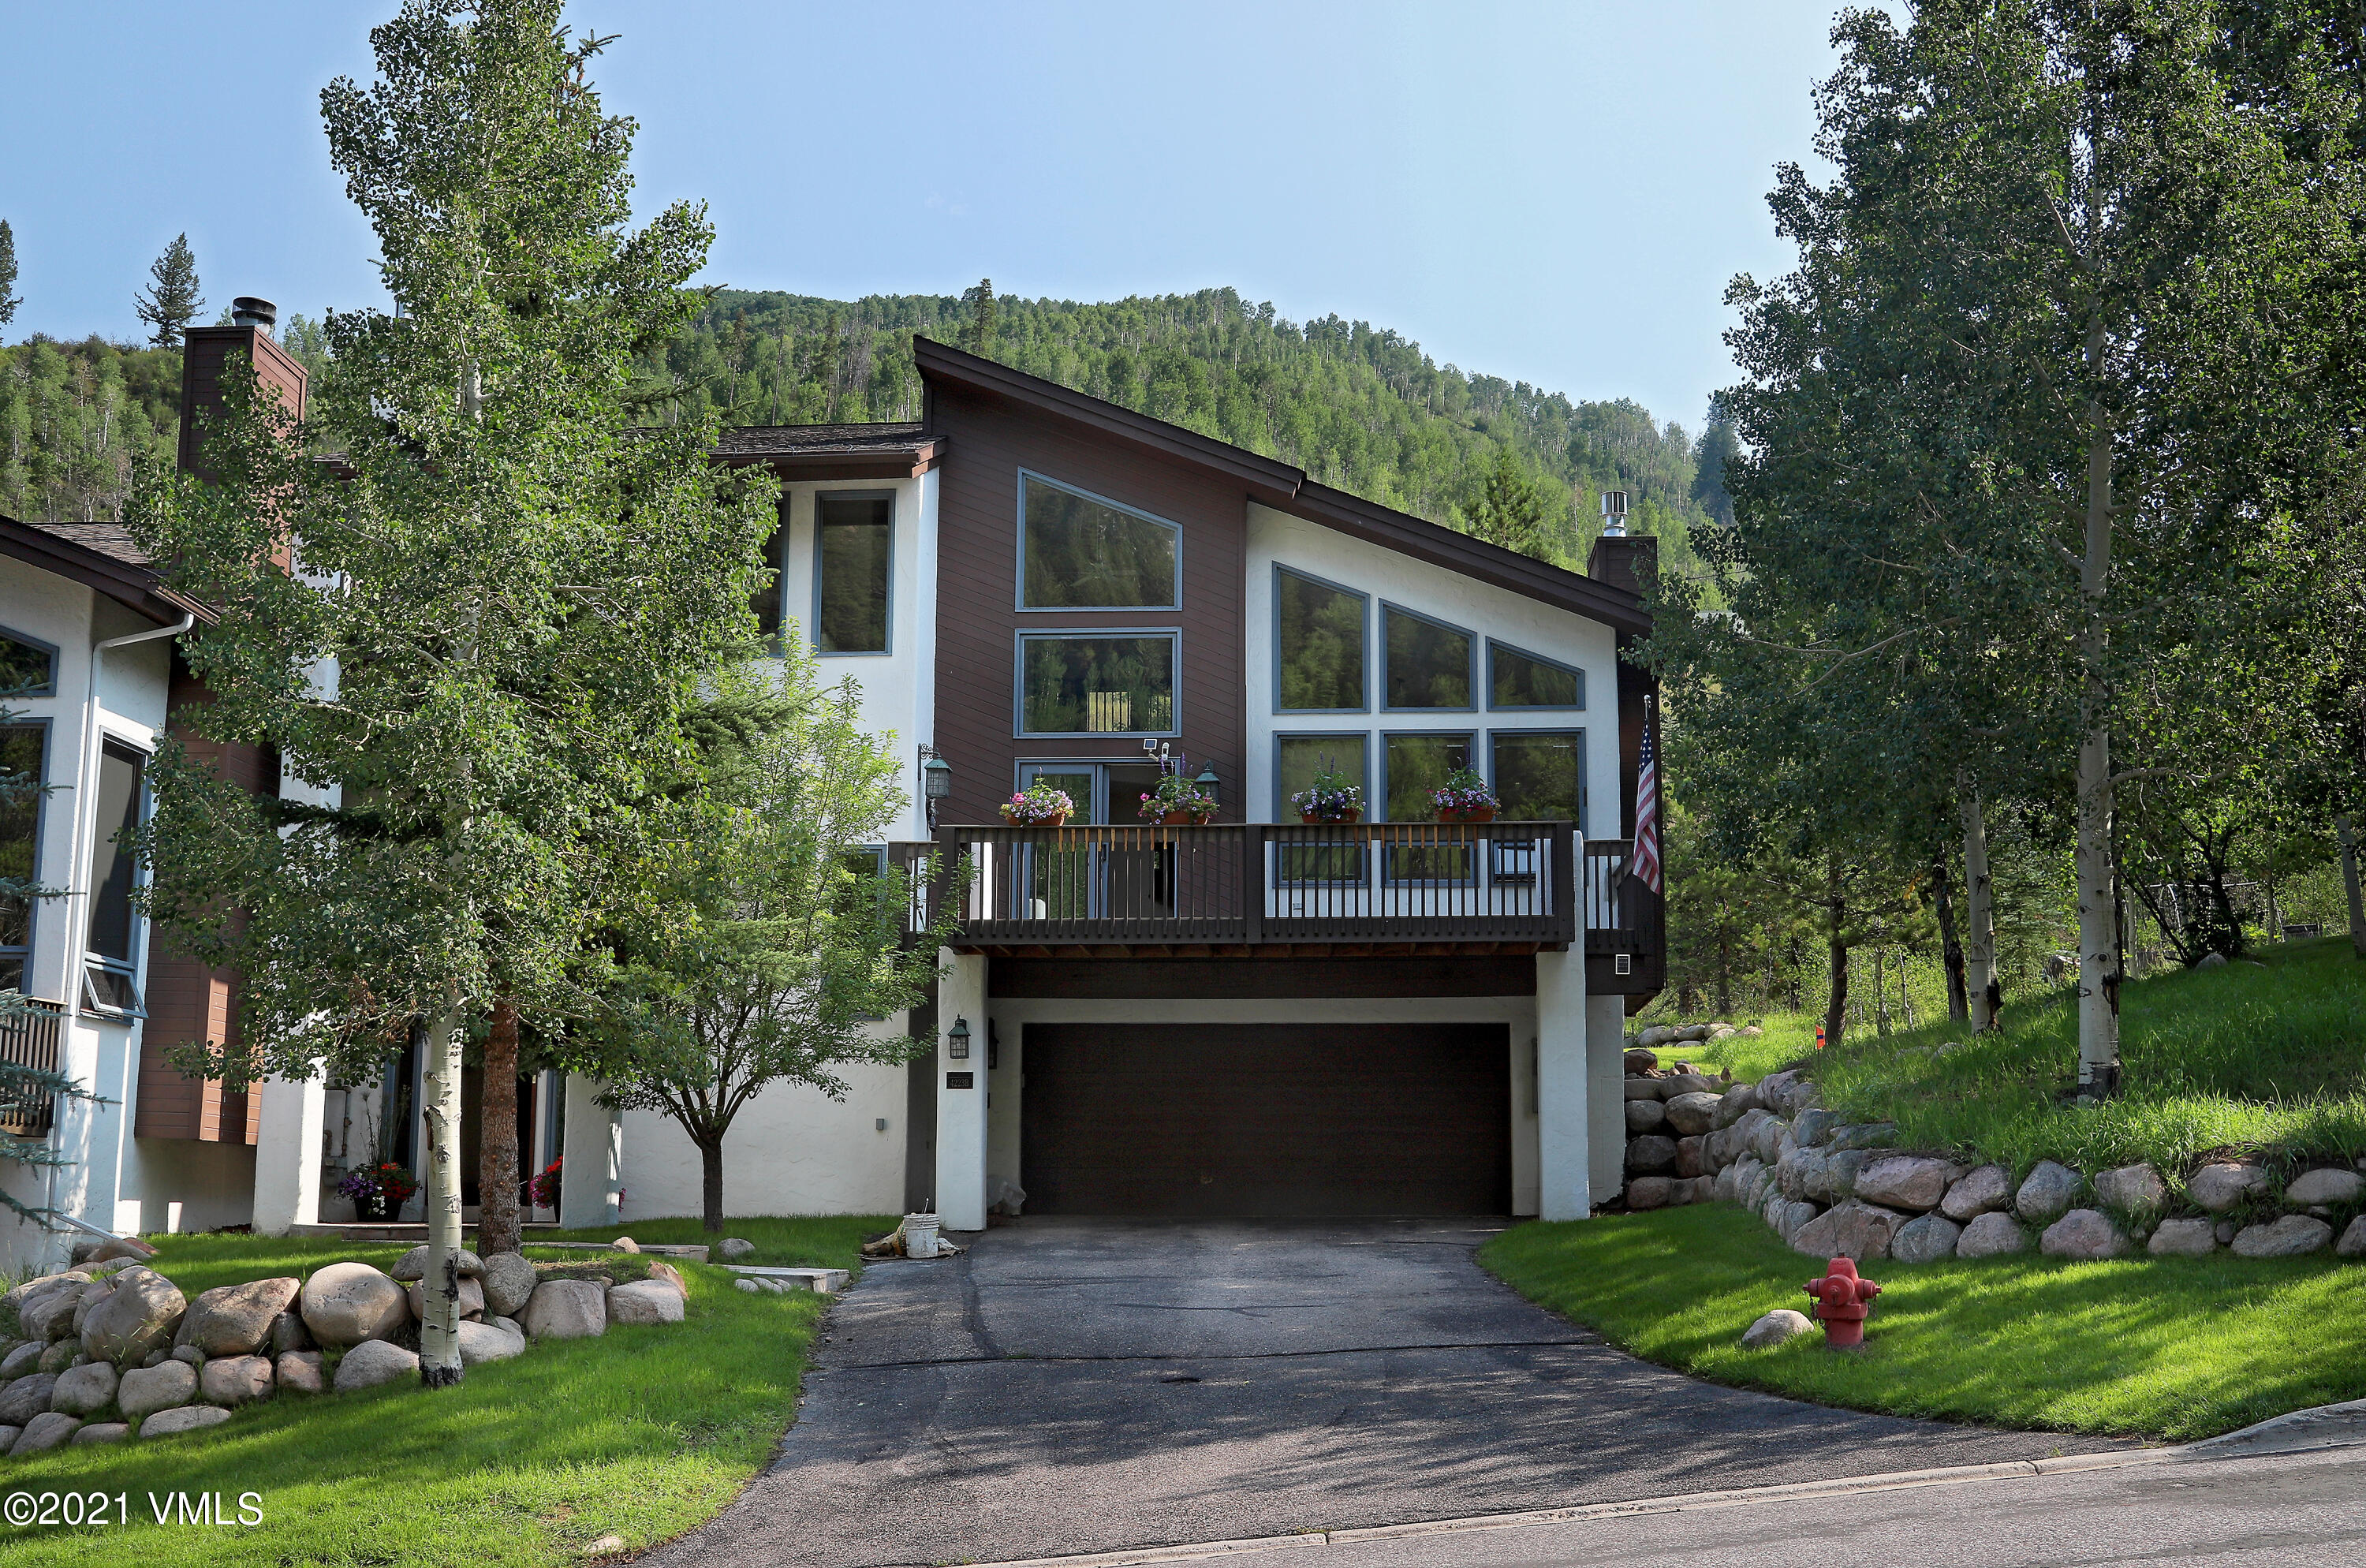 With beautiful mountain views, large decks, a flat, grassy back yard and separate driveway, the primary side of this duplex lives like a single-family. The home's towering ceilings and large windows welcome in morning sun while the mature aspens and evergreens that surround it provide afternoon shade on a quiet, picturesque street in East Vail. The open concept main floor has a spacious living room with modern gas fireplace encased in a beautiful, stacked stone chimney, abundant natural light, dining area, and walk-out access to both front and back decks. The large kitchen has Tuscan-inspired tile backsplash, slab granite countertops, and stainless steel appliances including 6-burner Wolf gas range and oven. Two large bedrooms each with their own bath complete the main floor. The upper level features a large master suite with walk-out deck and 2 adjacent bonus spaces for a home office, library, greenhouse, hot tub, sauna, play room, yoga area, art studio or whatever you need! The focal point of the updated 5-piece bath is its classy, entrend, free-standing tub. The lower level has a creatively designed space that is currently doubling as a separate family room and 4th bedroom with tastefully updated 3/4 bath. Finally, you won't believe the built-in storage and work spaces in the oversized 2-car garage complete with wash sink and extra freezer. Don't miss this incredibly spacious home with 3 total decks, a great yard for the dog or kids, plenty of parking for you and your guests, and easy access to I-70.